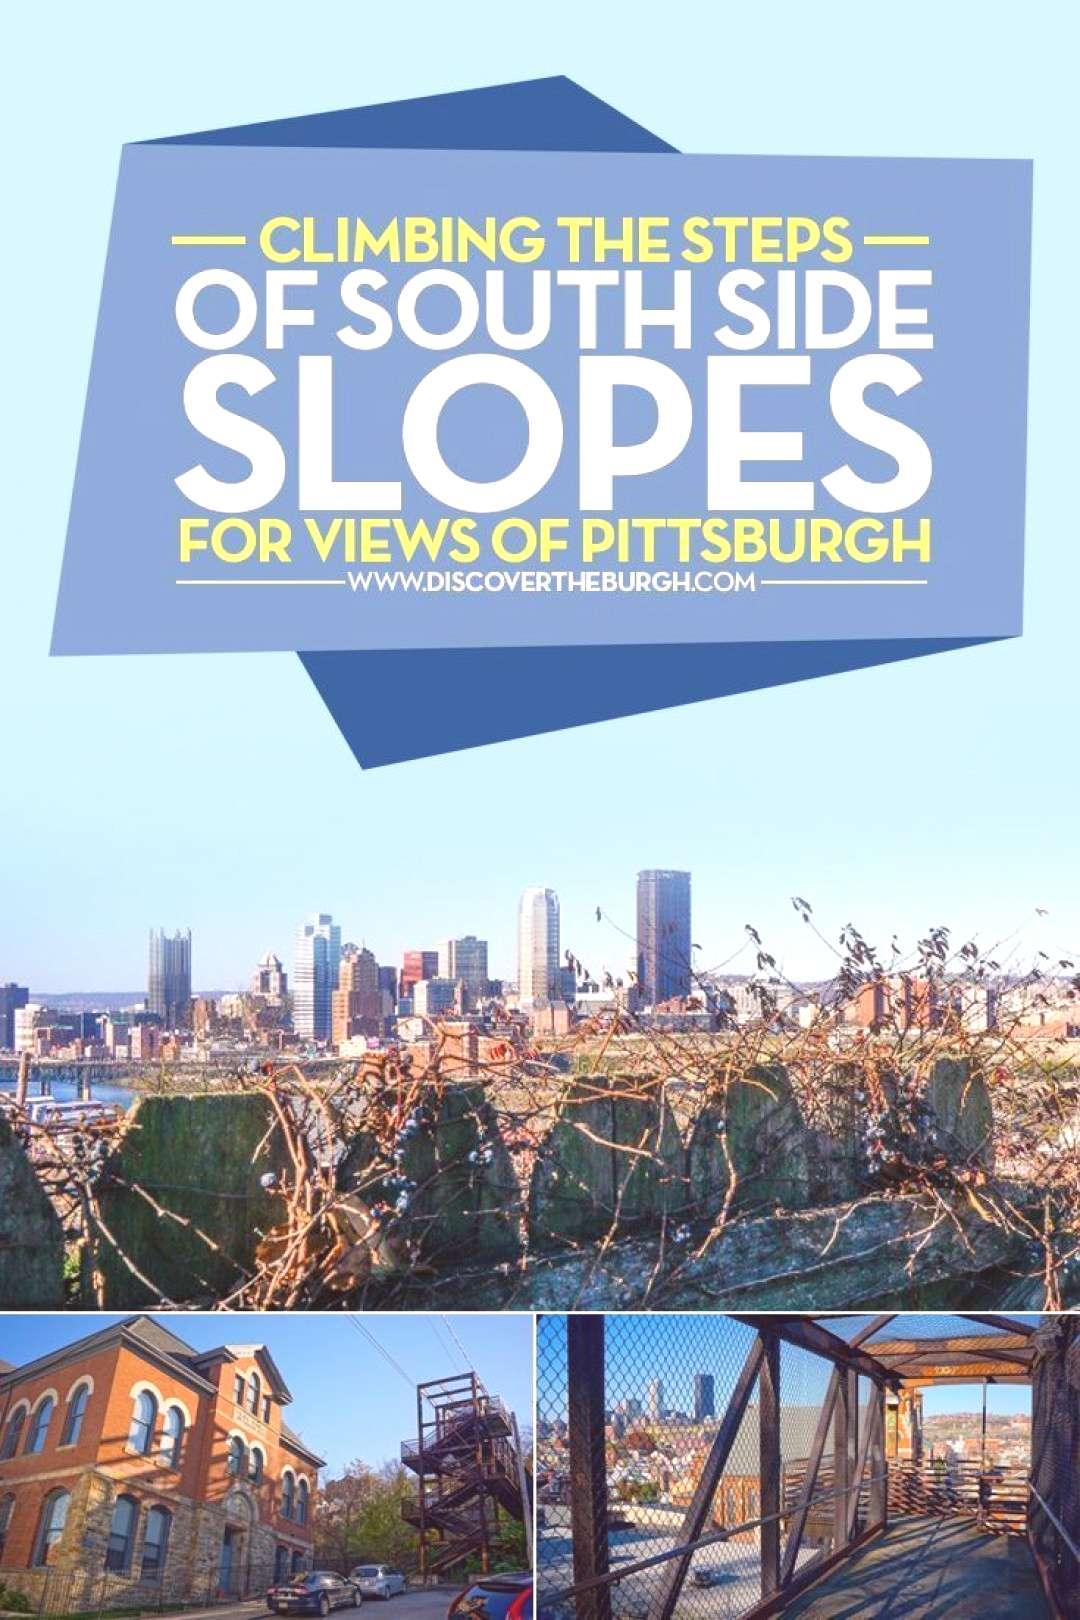 Climbing the Steps of South Side Slopes for Views of Pittsburgh Pittsburghs South Side Slopes are